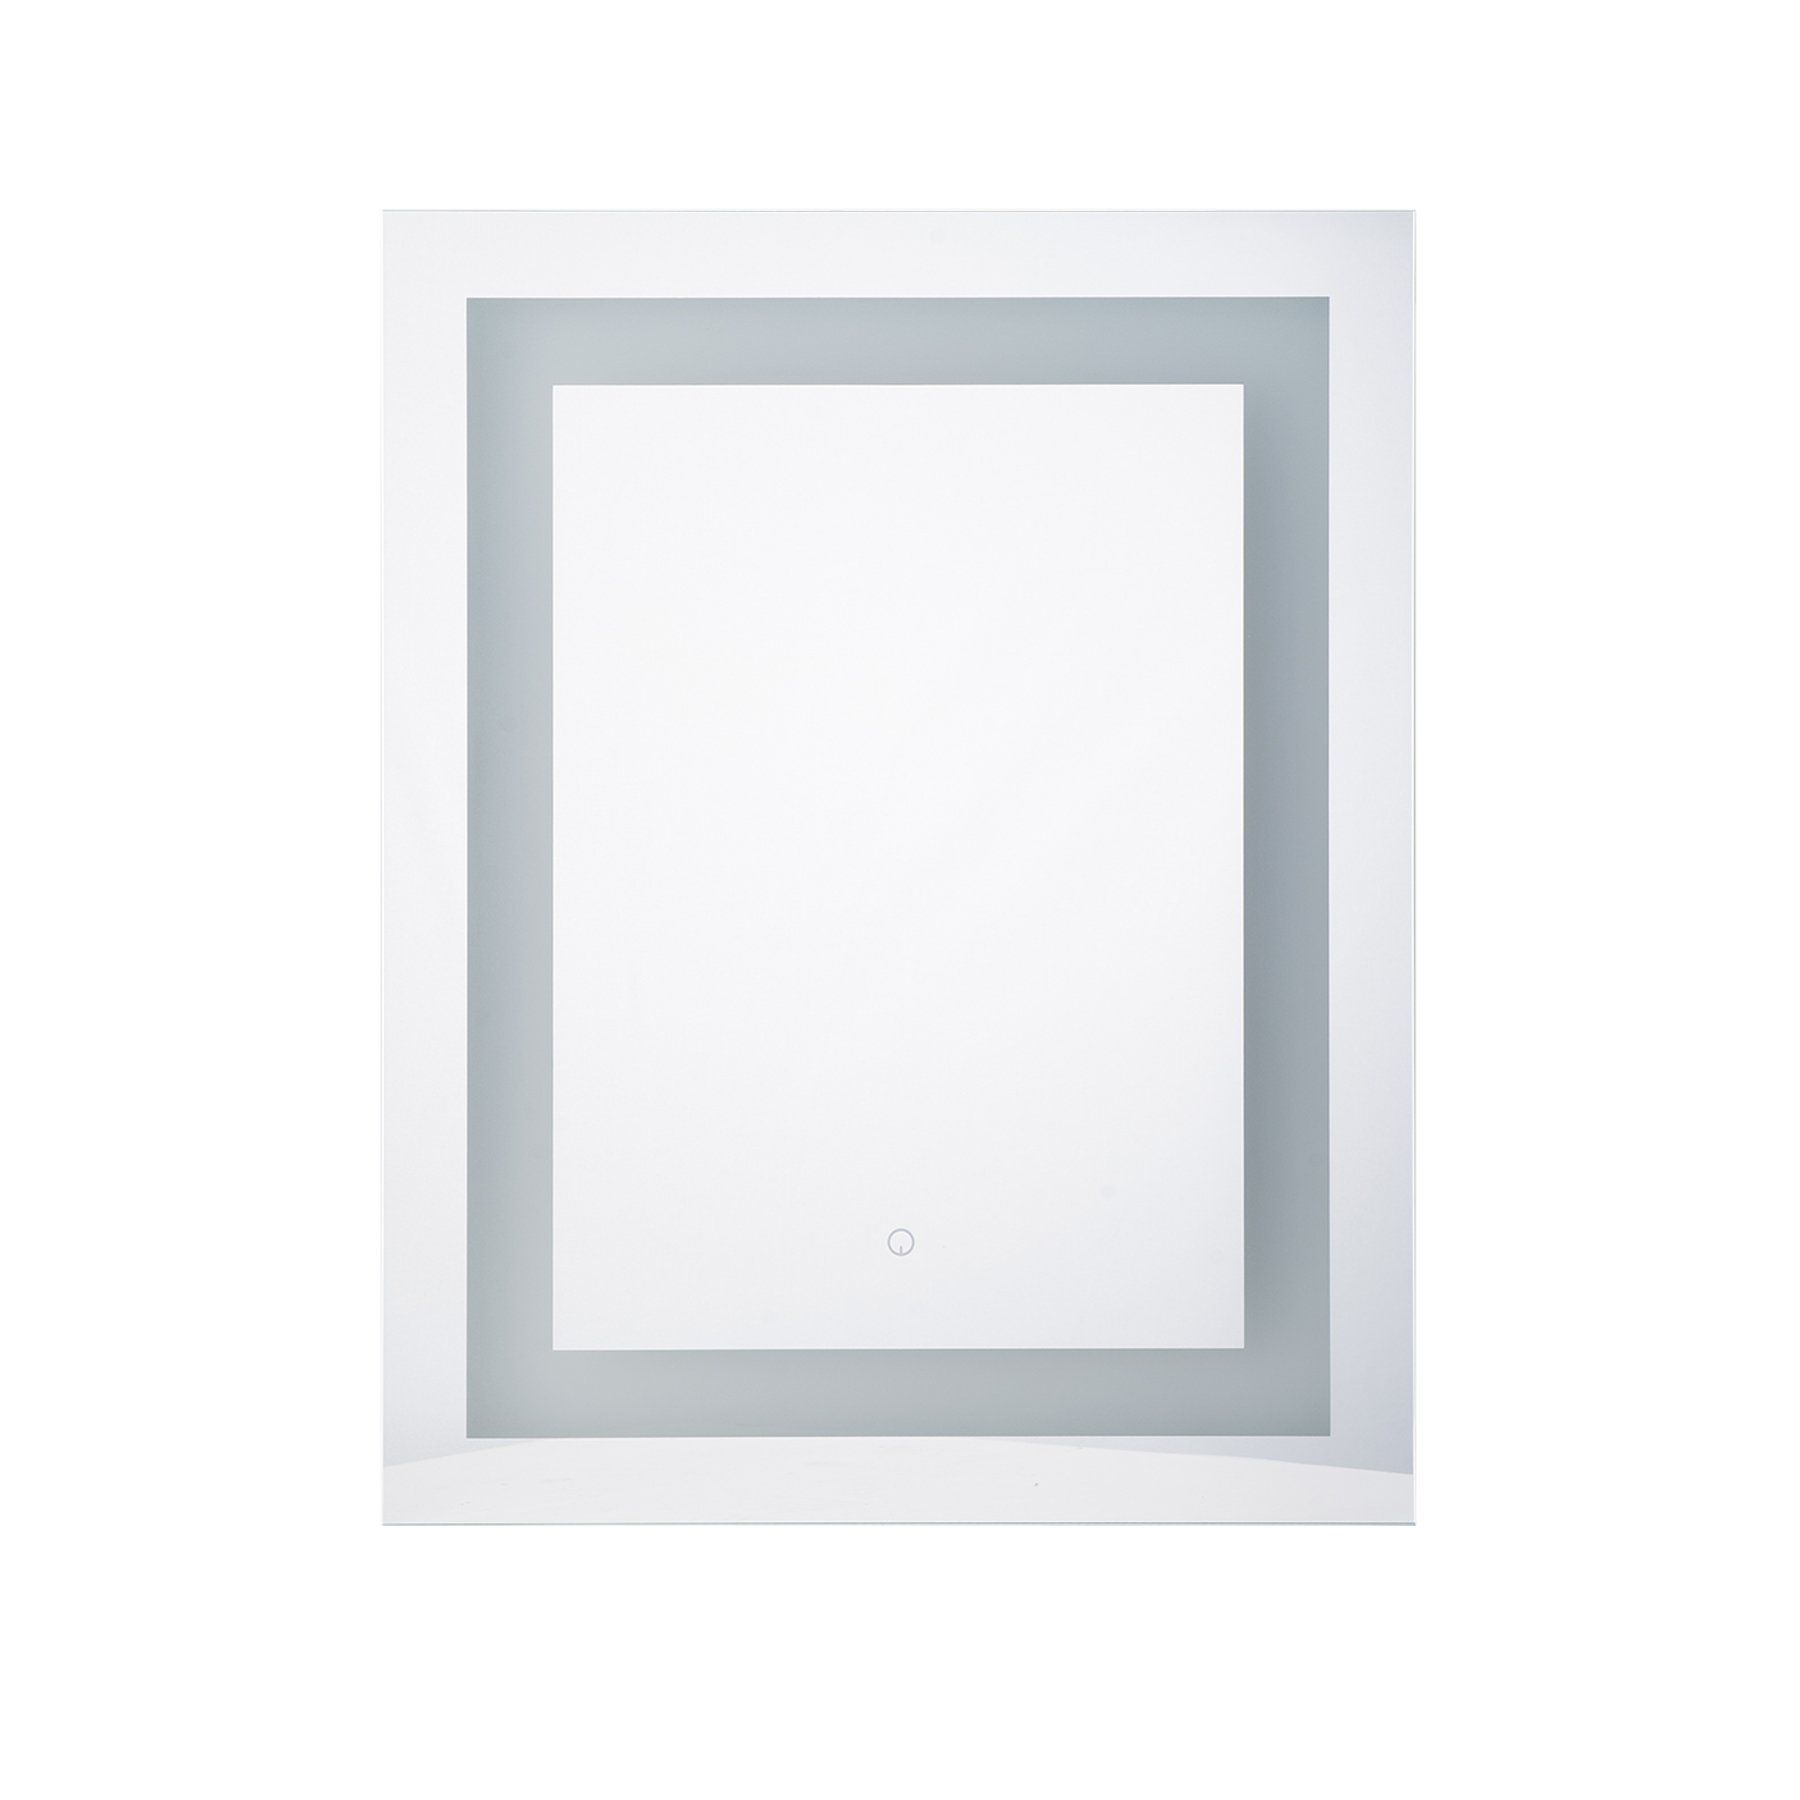 """CO-Z Dimmable LED Bathroom Wall Mirror Light, Lighted Vanity Mirror for Make Up, Wall Mounted (24"""" x 30"""") by CO-Z (Image #9)"""